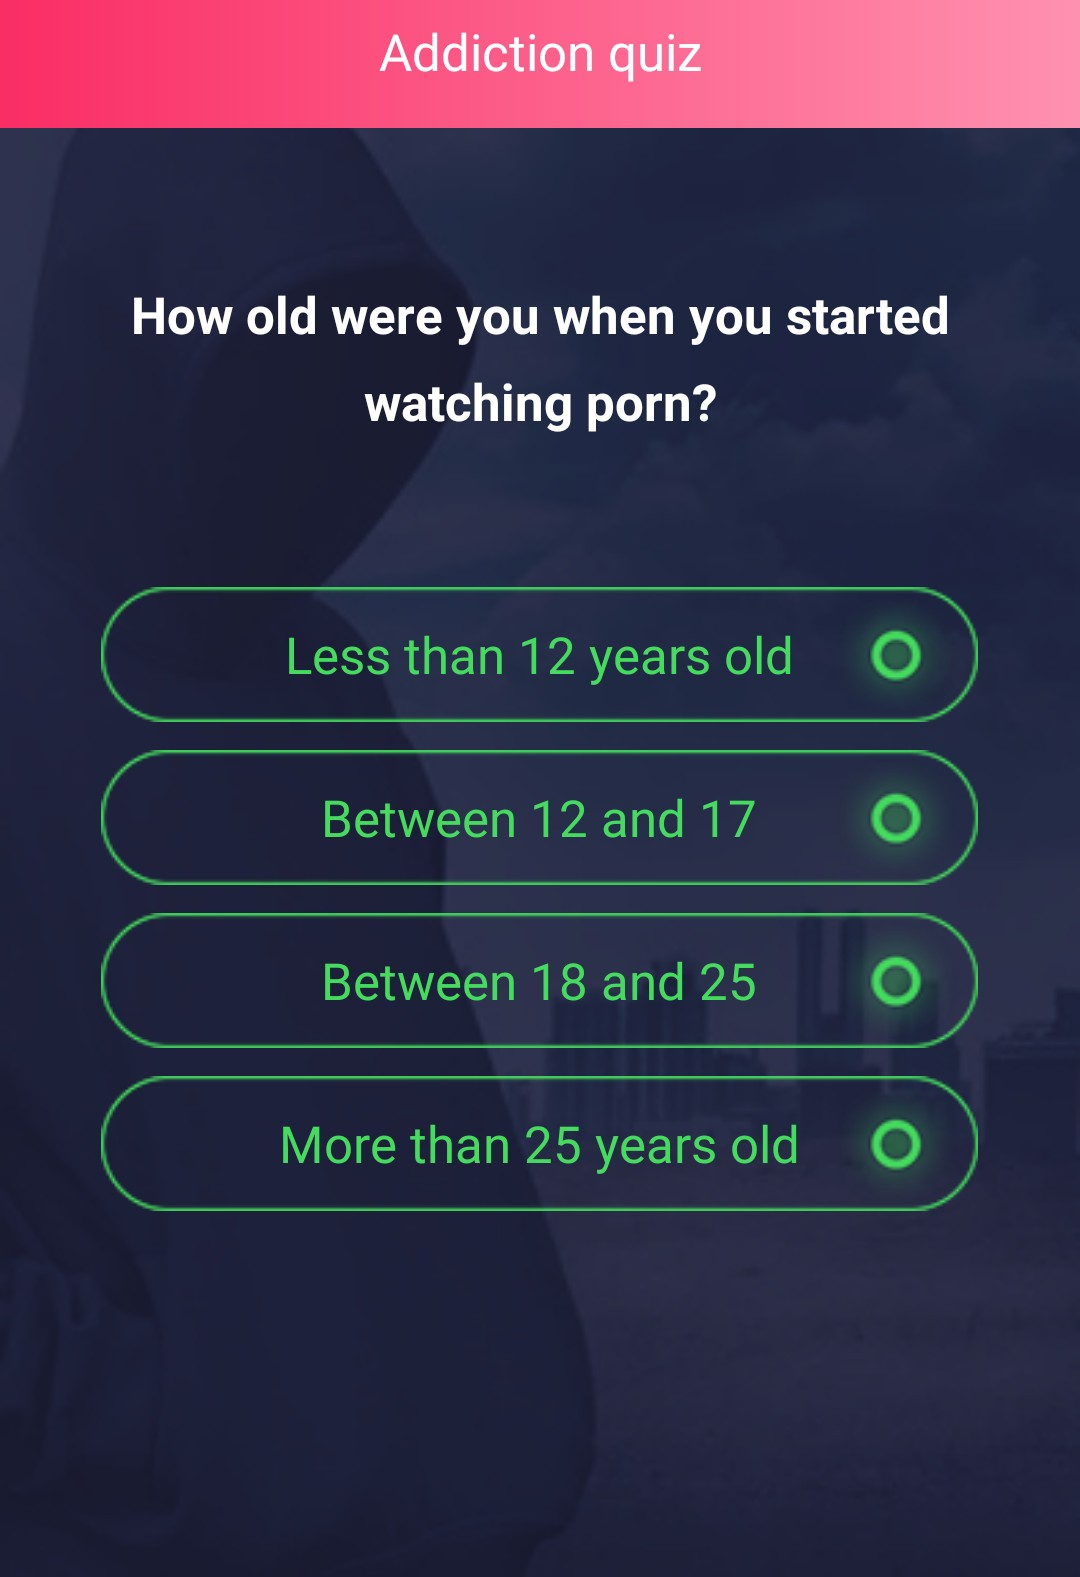 A Quick Quiz To Test Your Level Of Addiction To Pornography